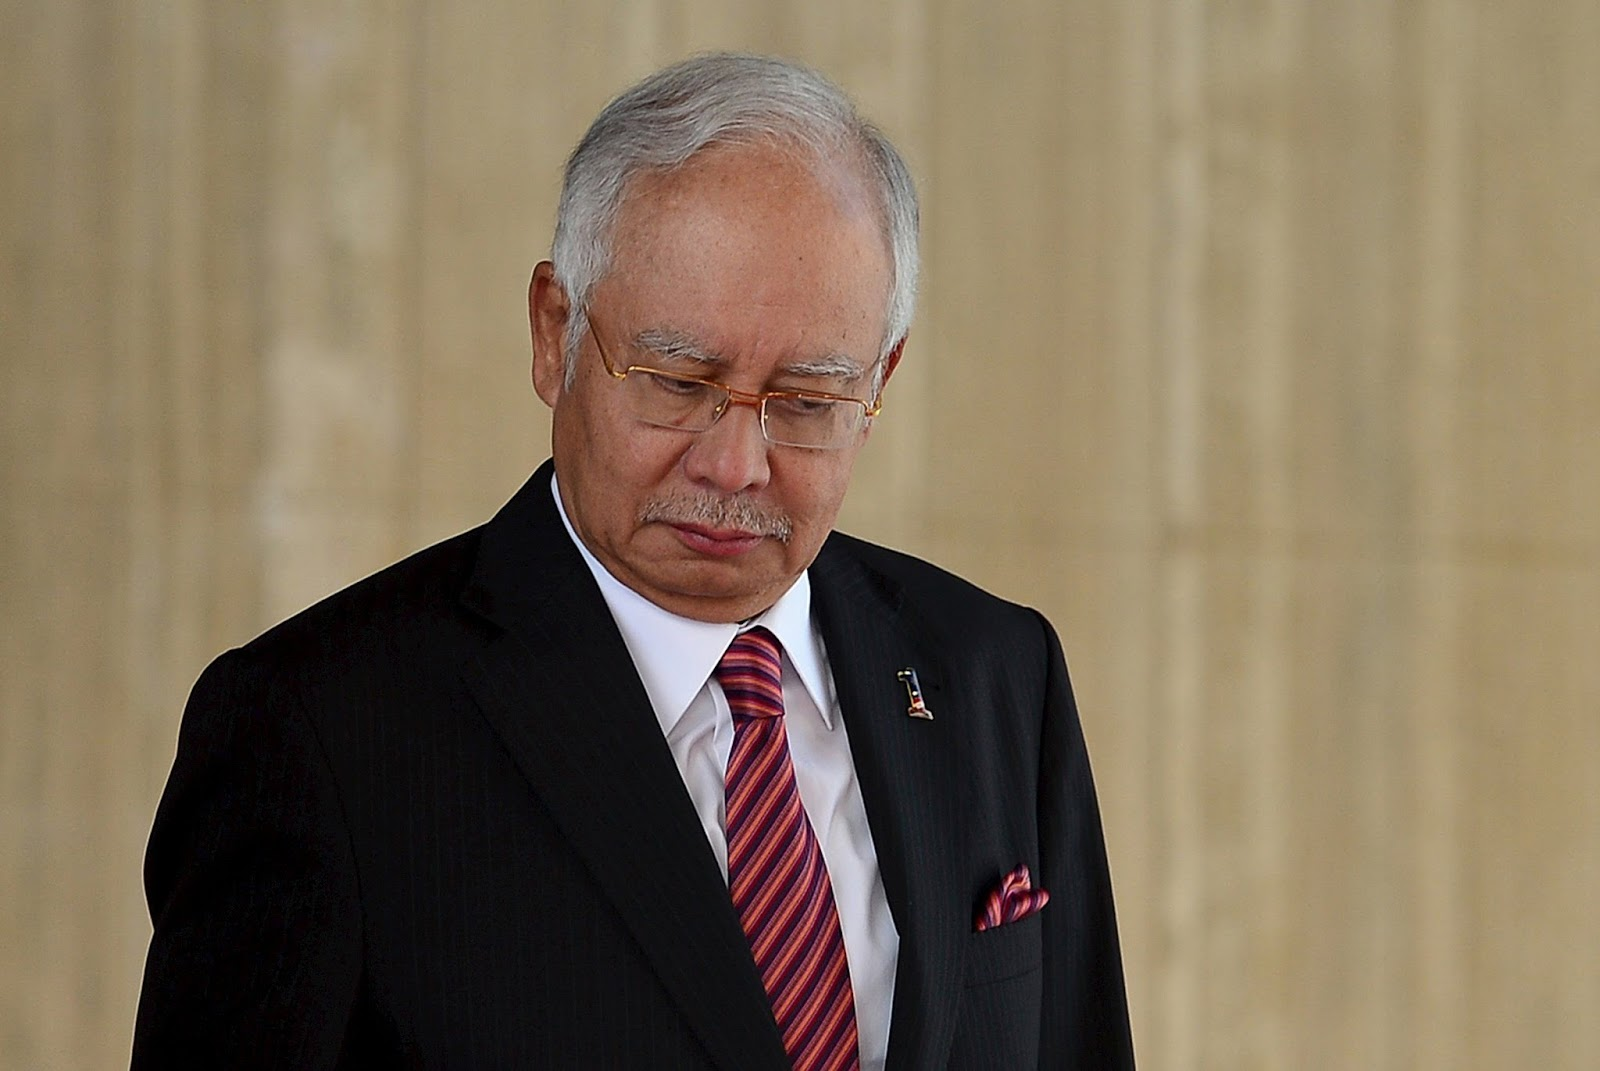 Focus on boat search and rescue not point fingers sabah minister says malay mail online - Is Najib Razak The Prime Minister Of Malaysia Under Siege We Think So Yes